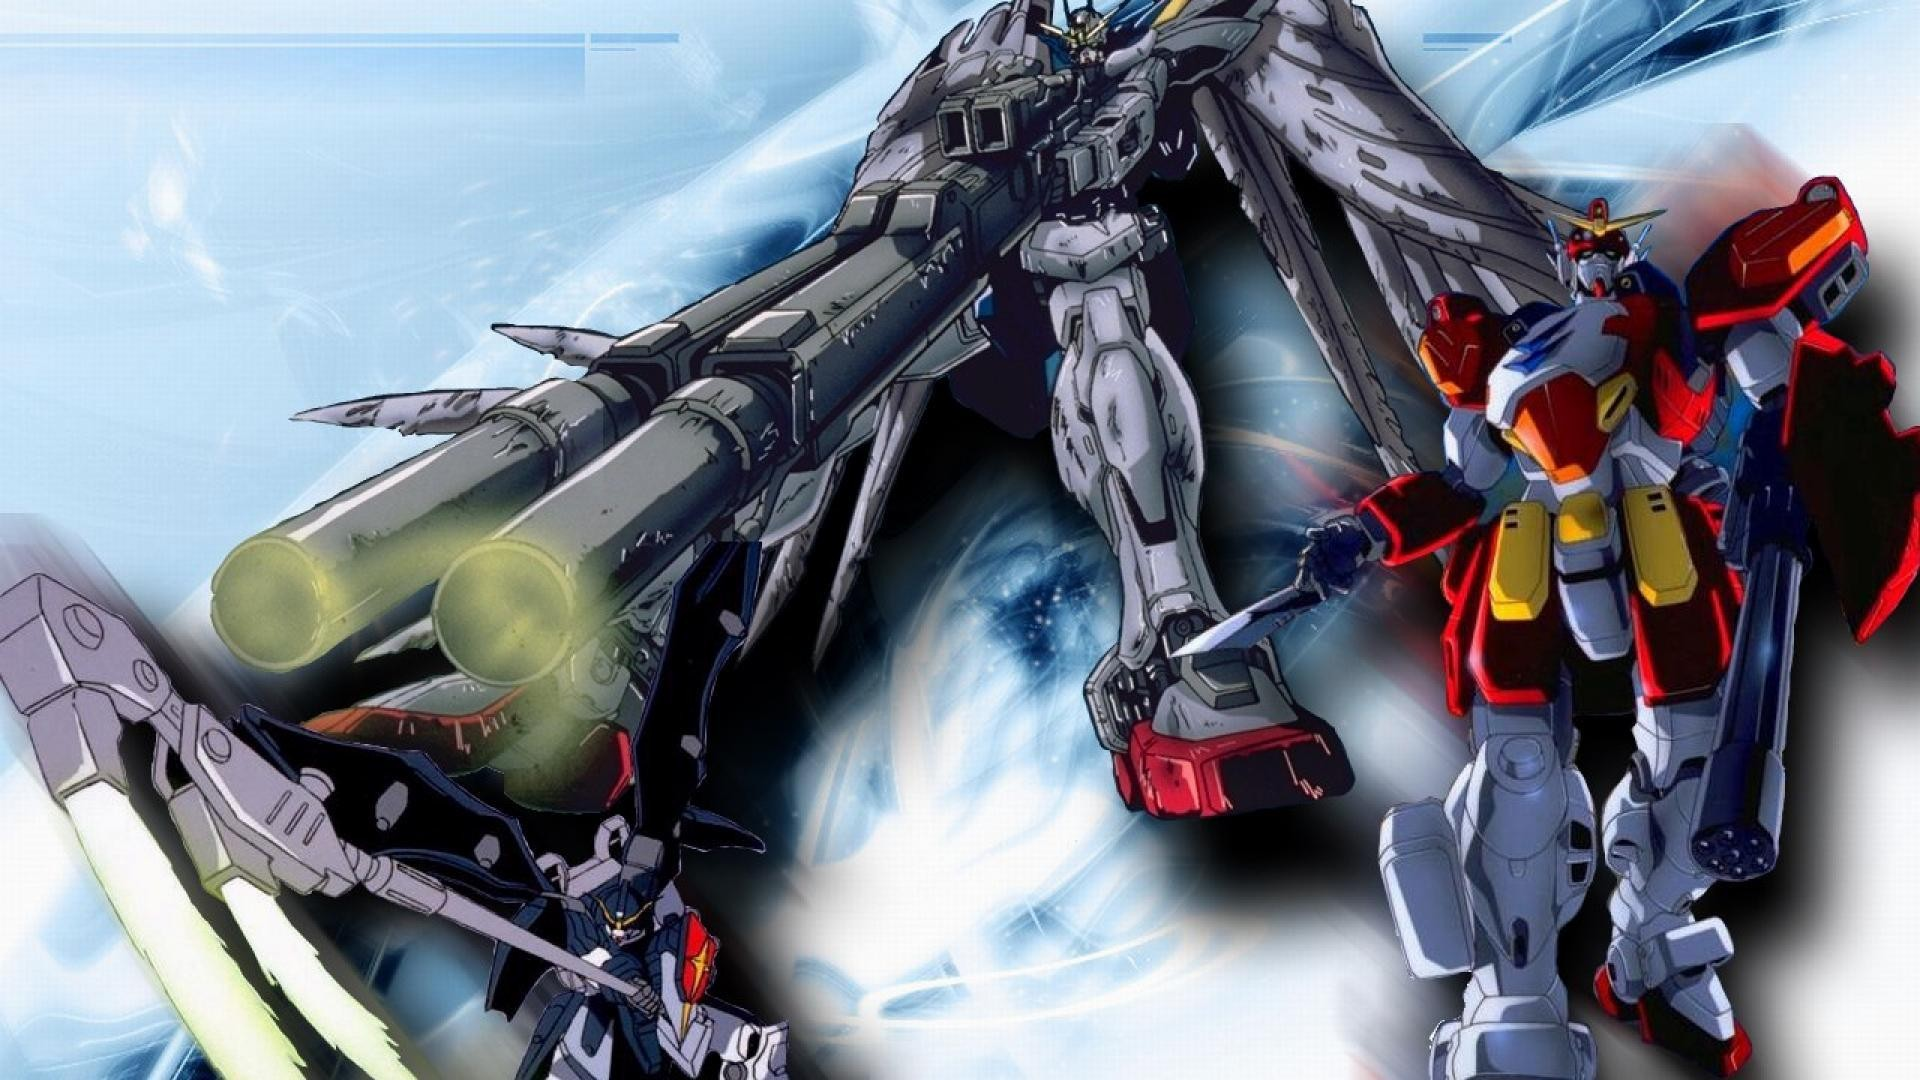 Gundam Wing Wallpaper ·① Download Free Cool Wallpapers For